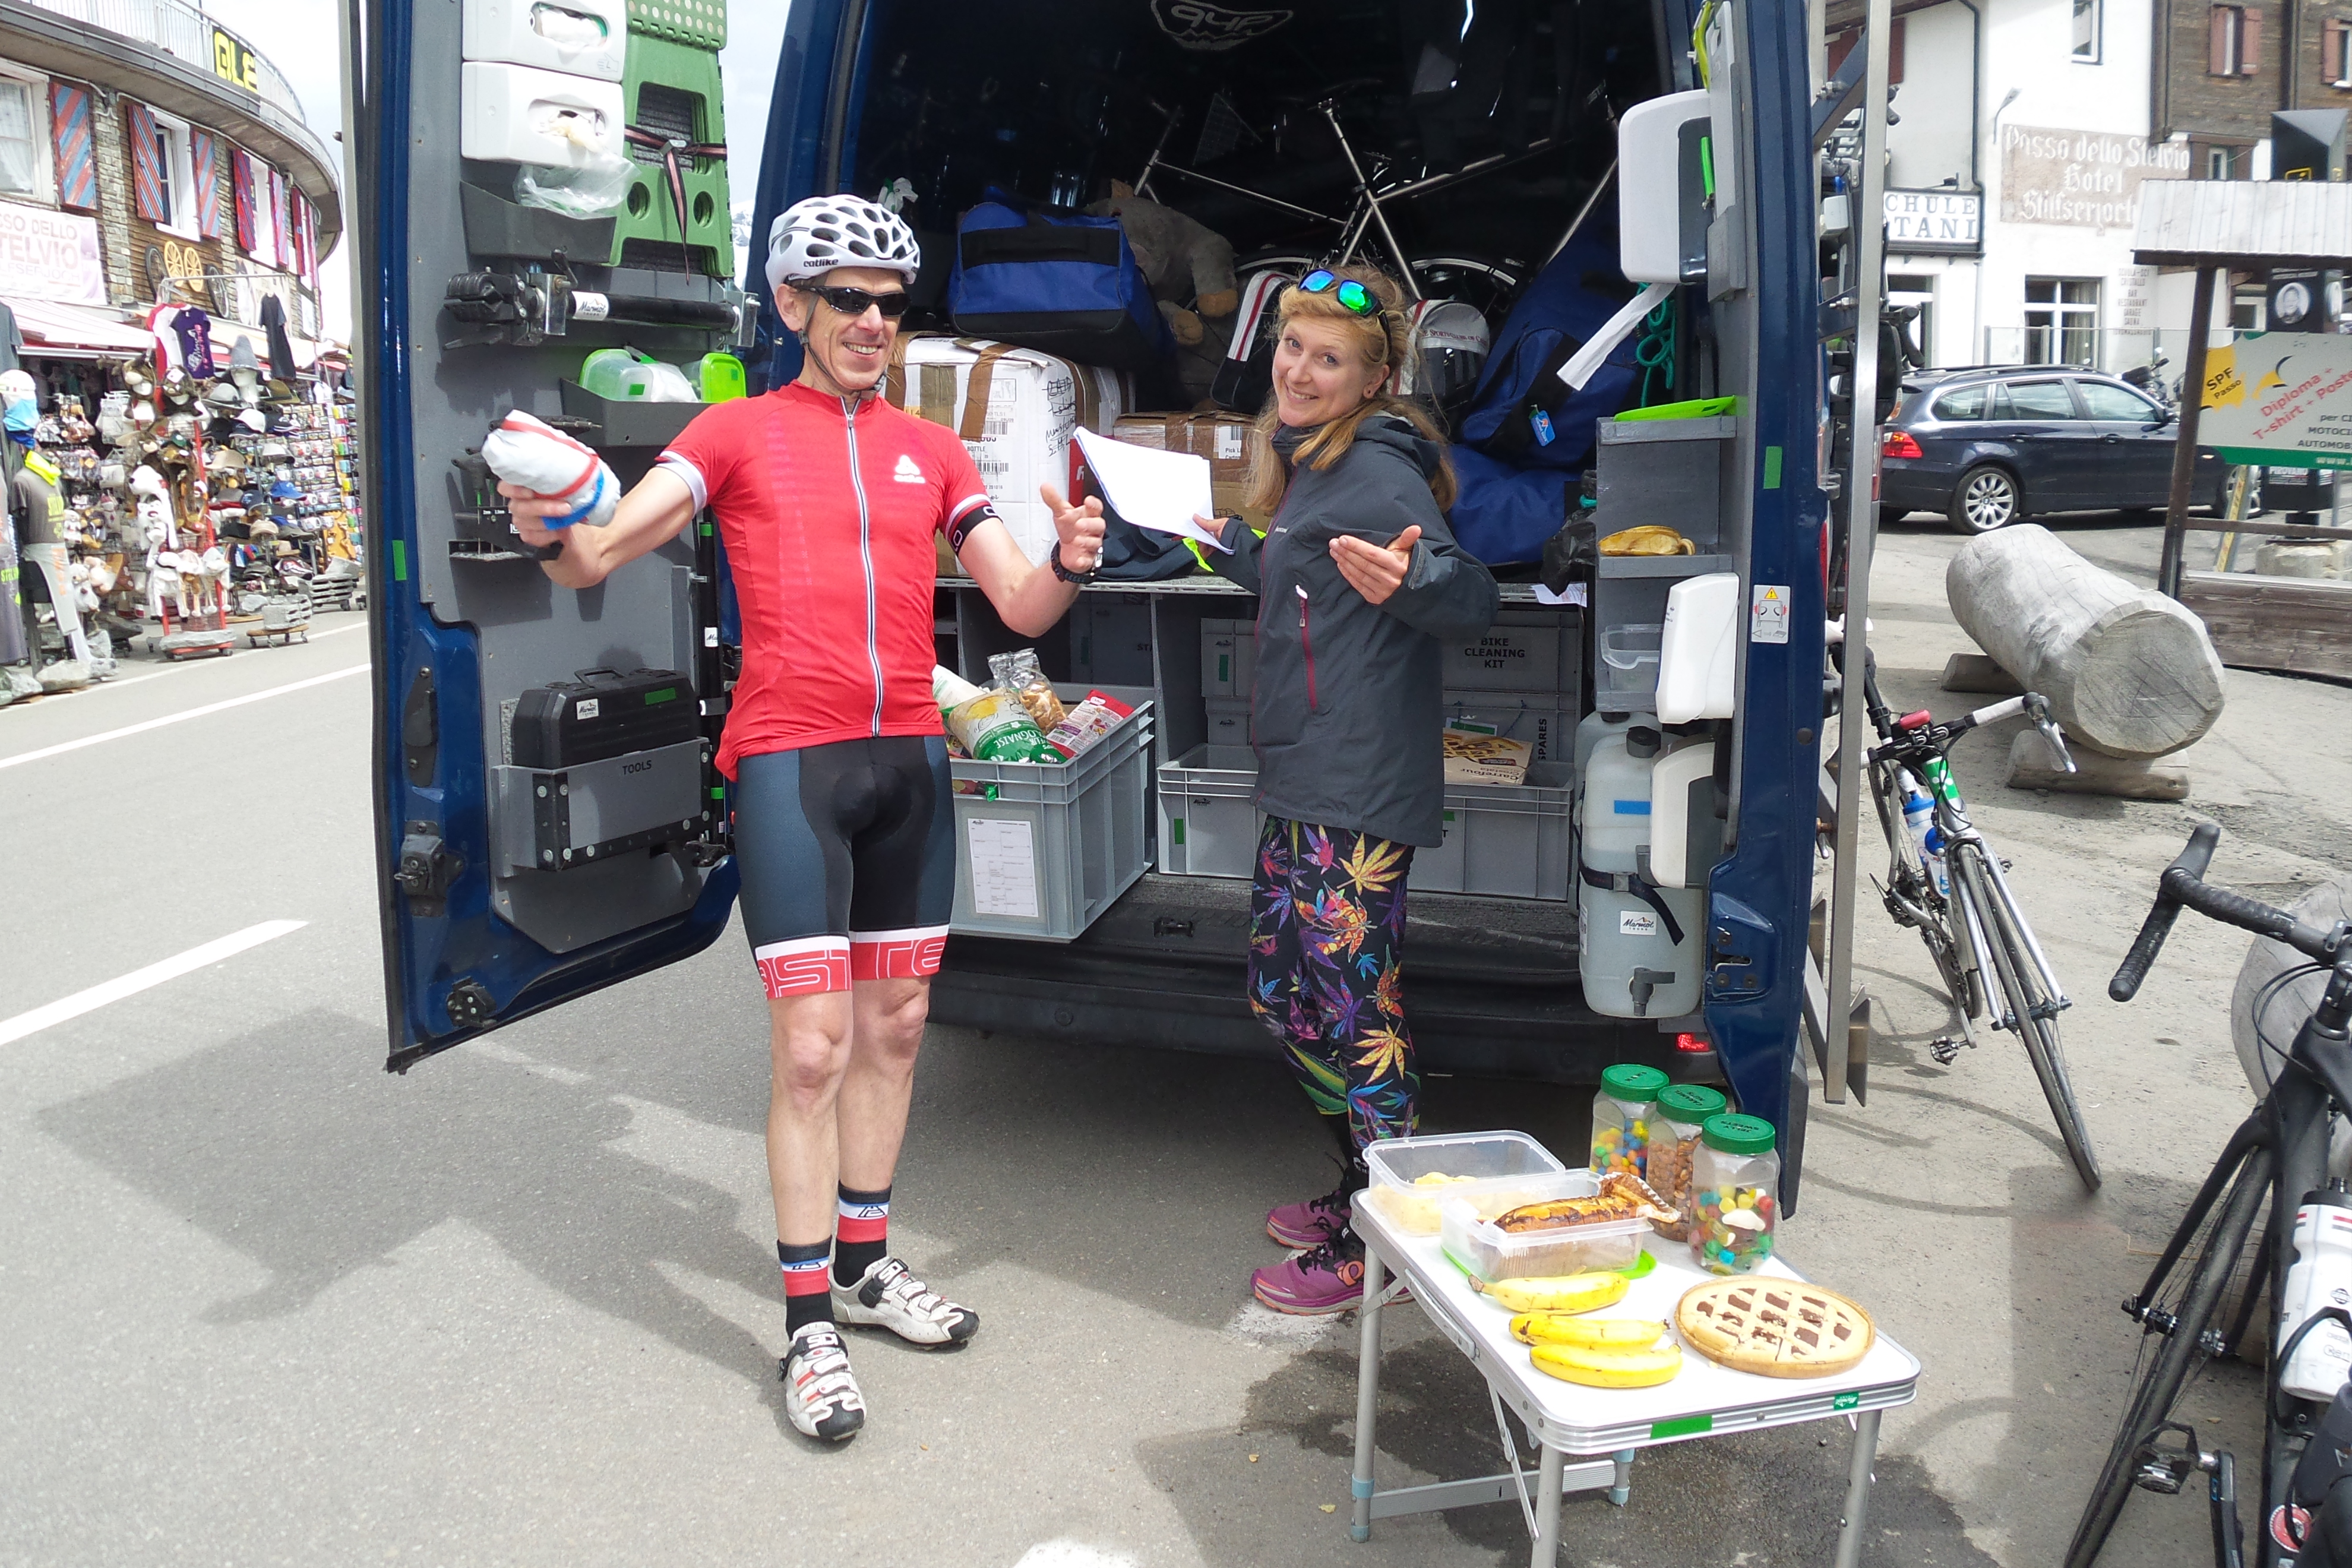 Marmot Tours staff support our riders with food, water, and moral support